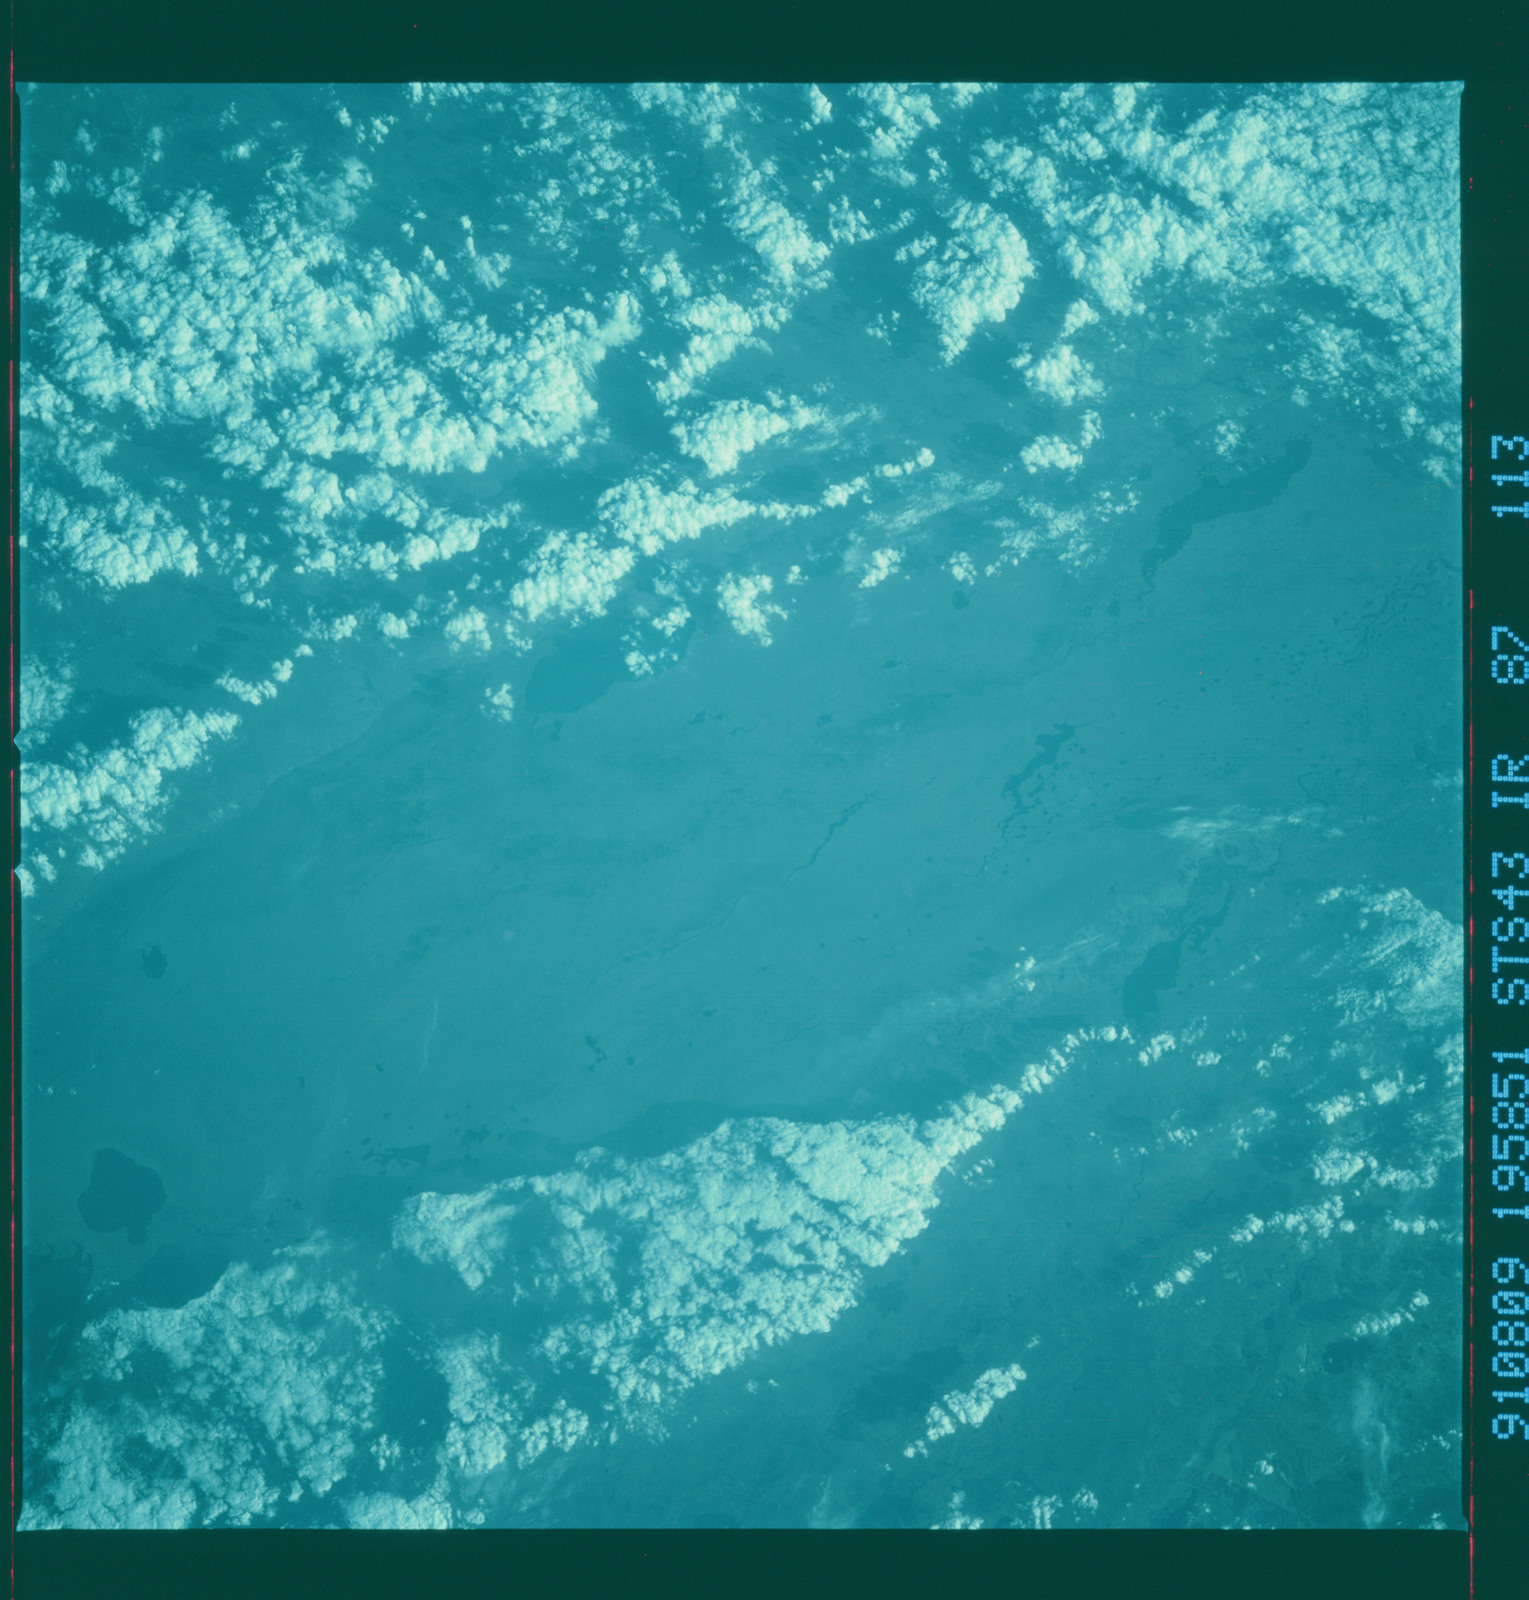 S43-87-113 - STS-043 - STS-43 earth observations